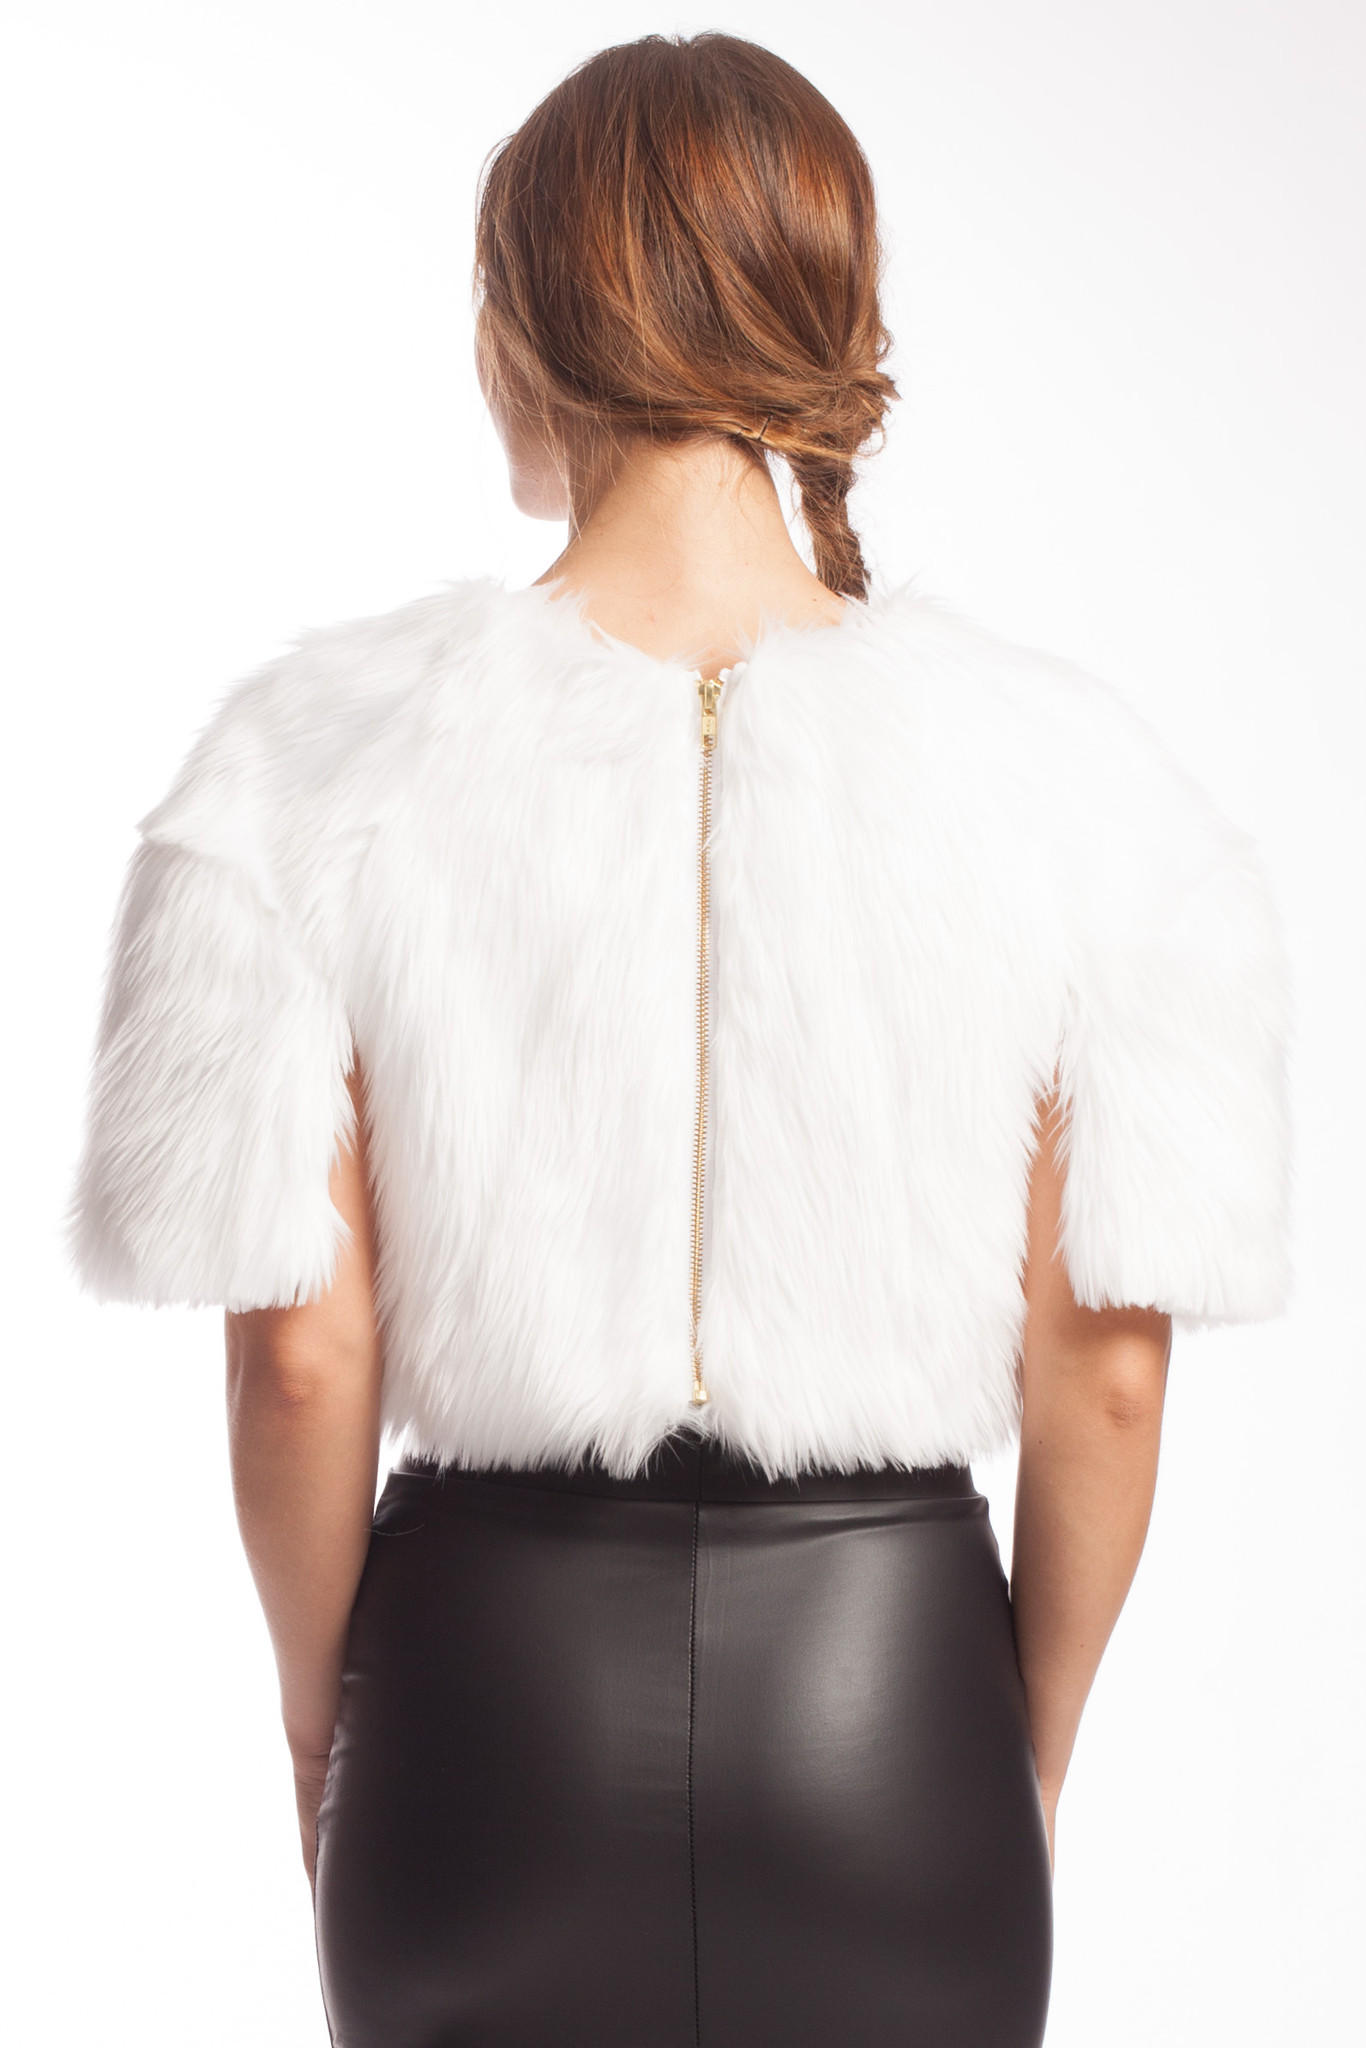 Pope Crop Top With Faux Fur From Seneca Amp Spruce 90s